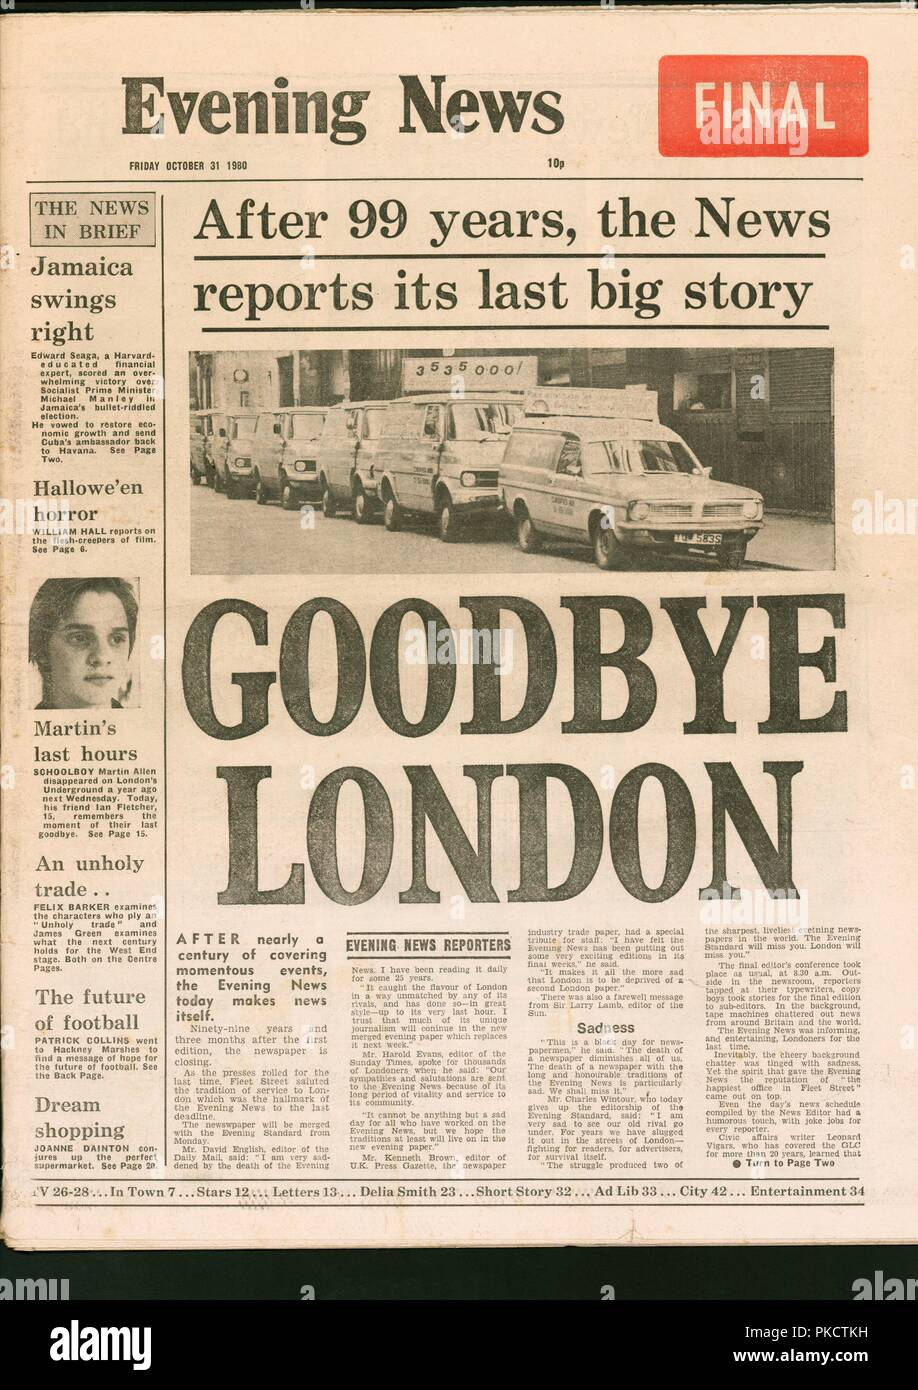 Final edition of the Evening News newspaper, 1980  Artist